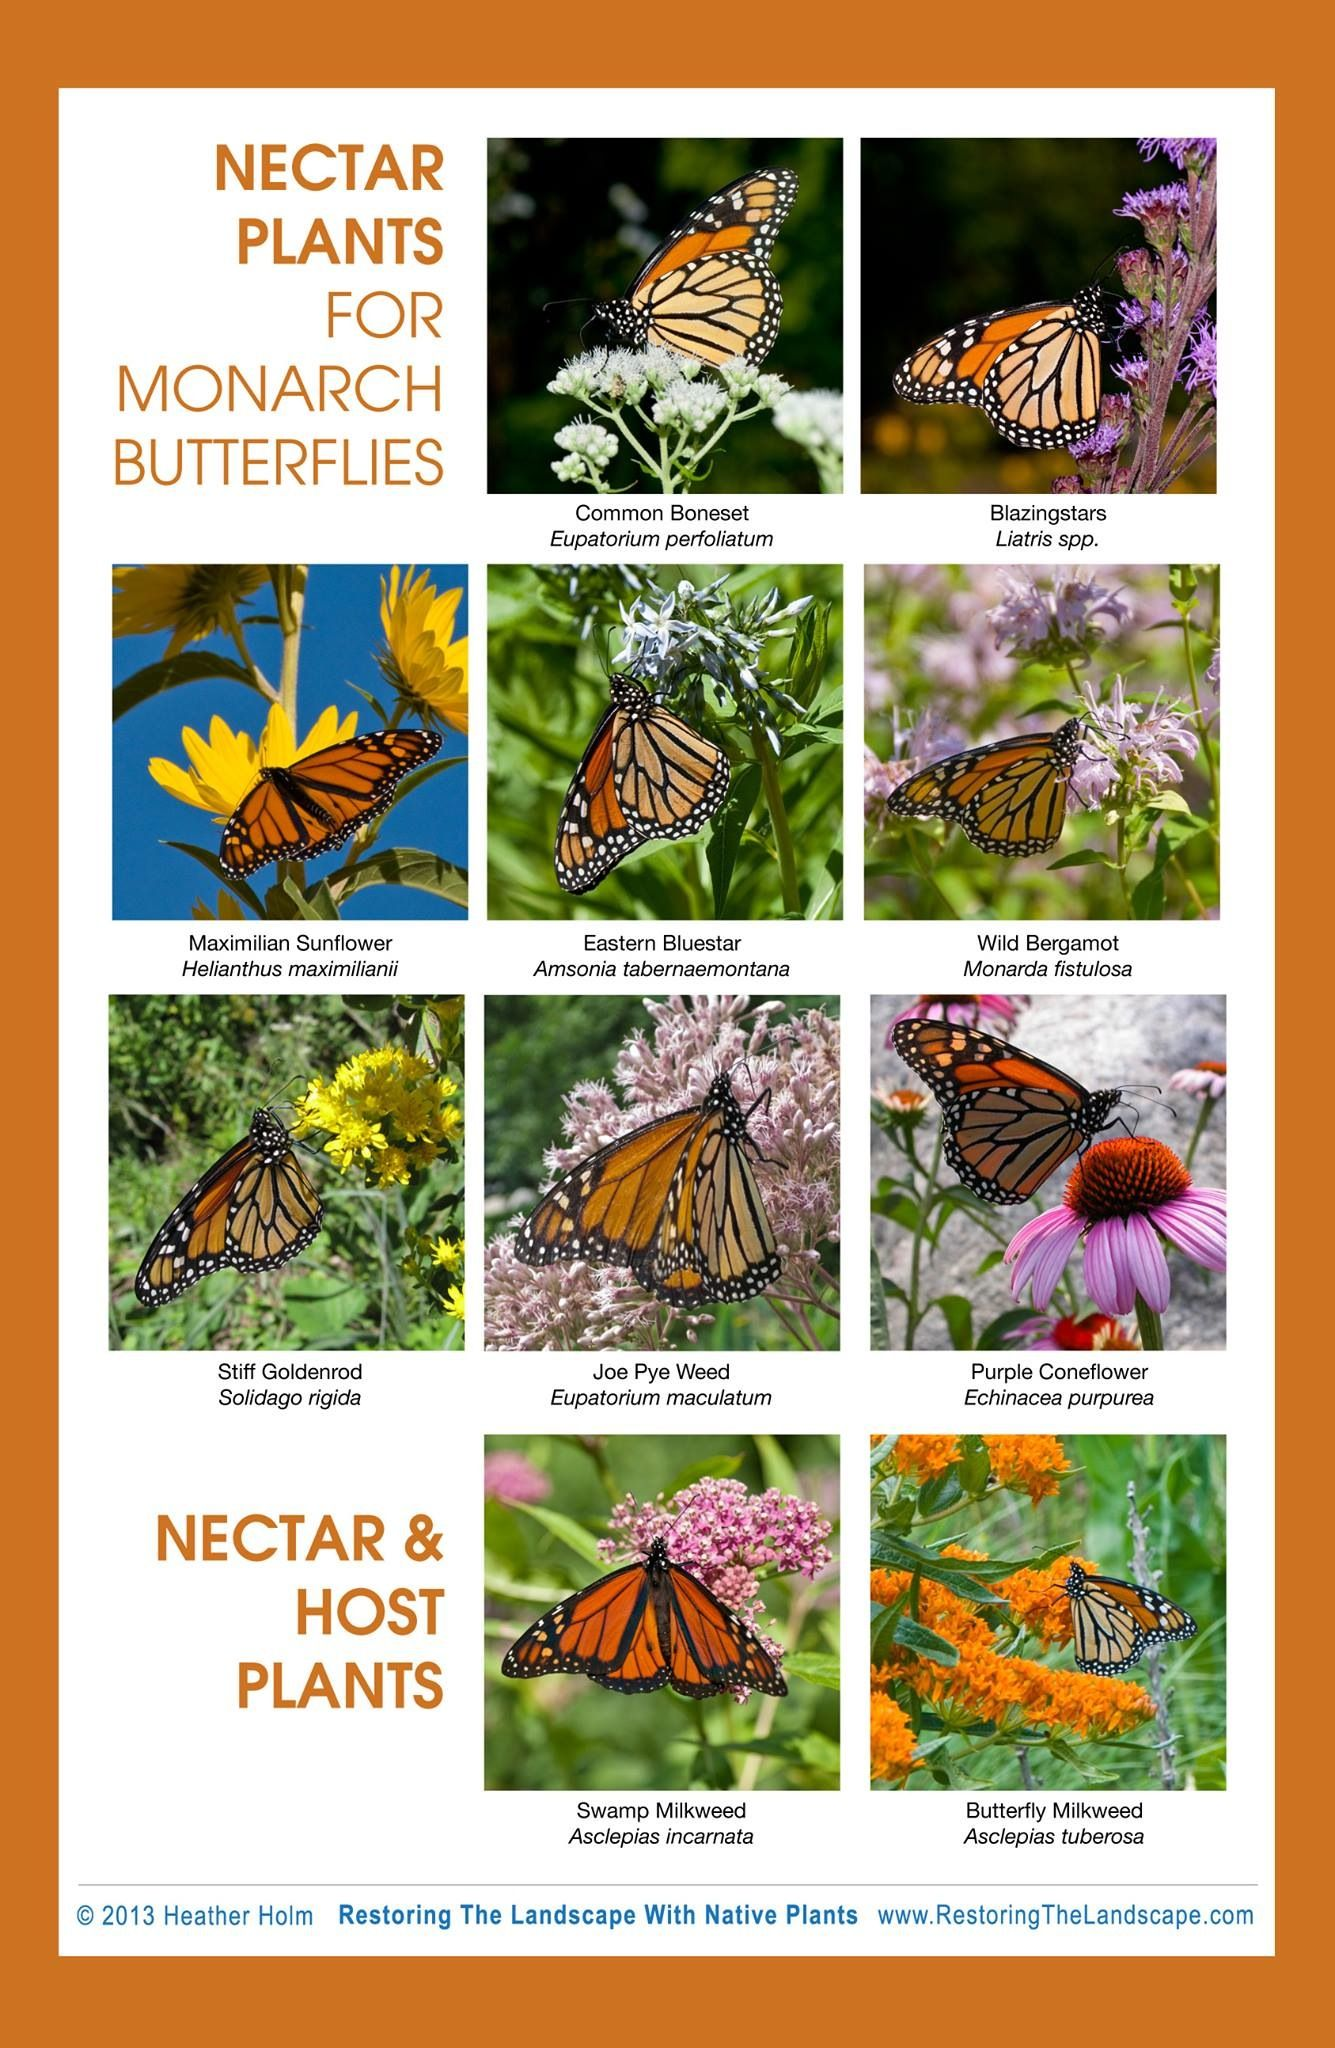 Best Nectar Plants For Monarchs And Other Butterflies Remember